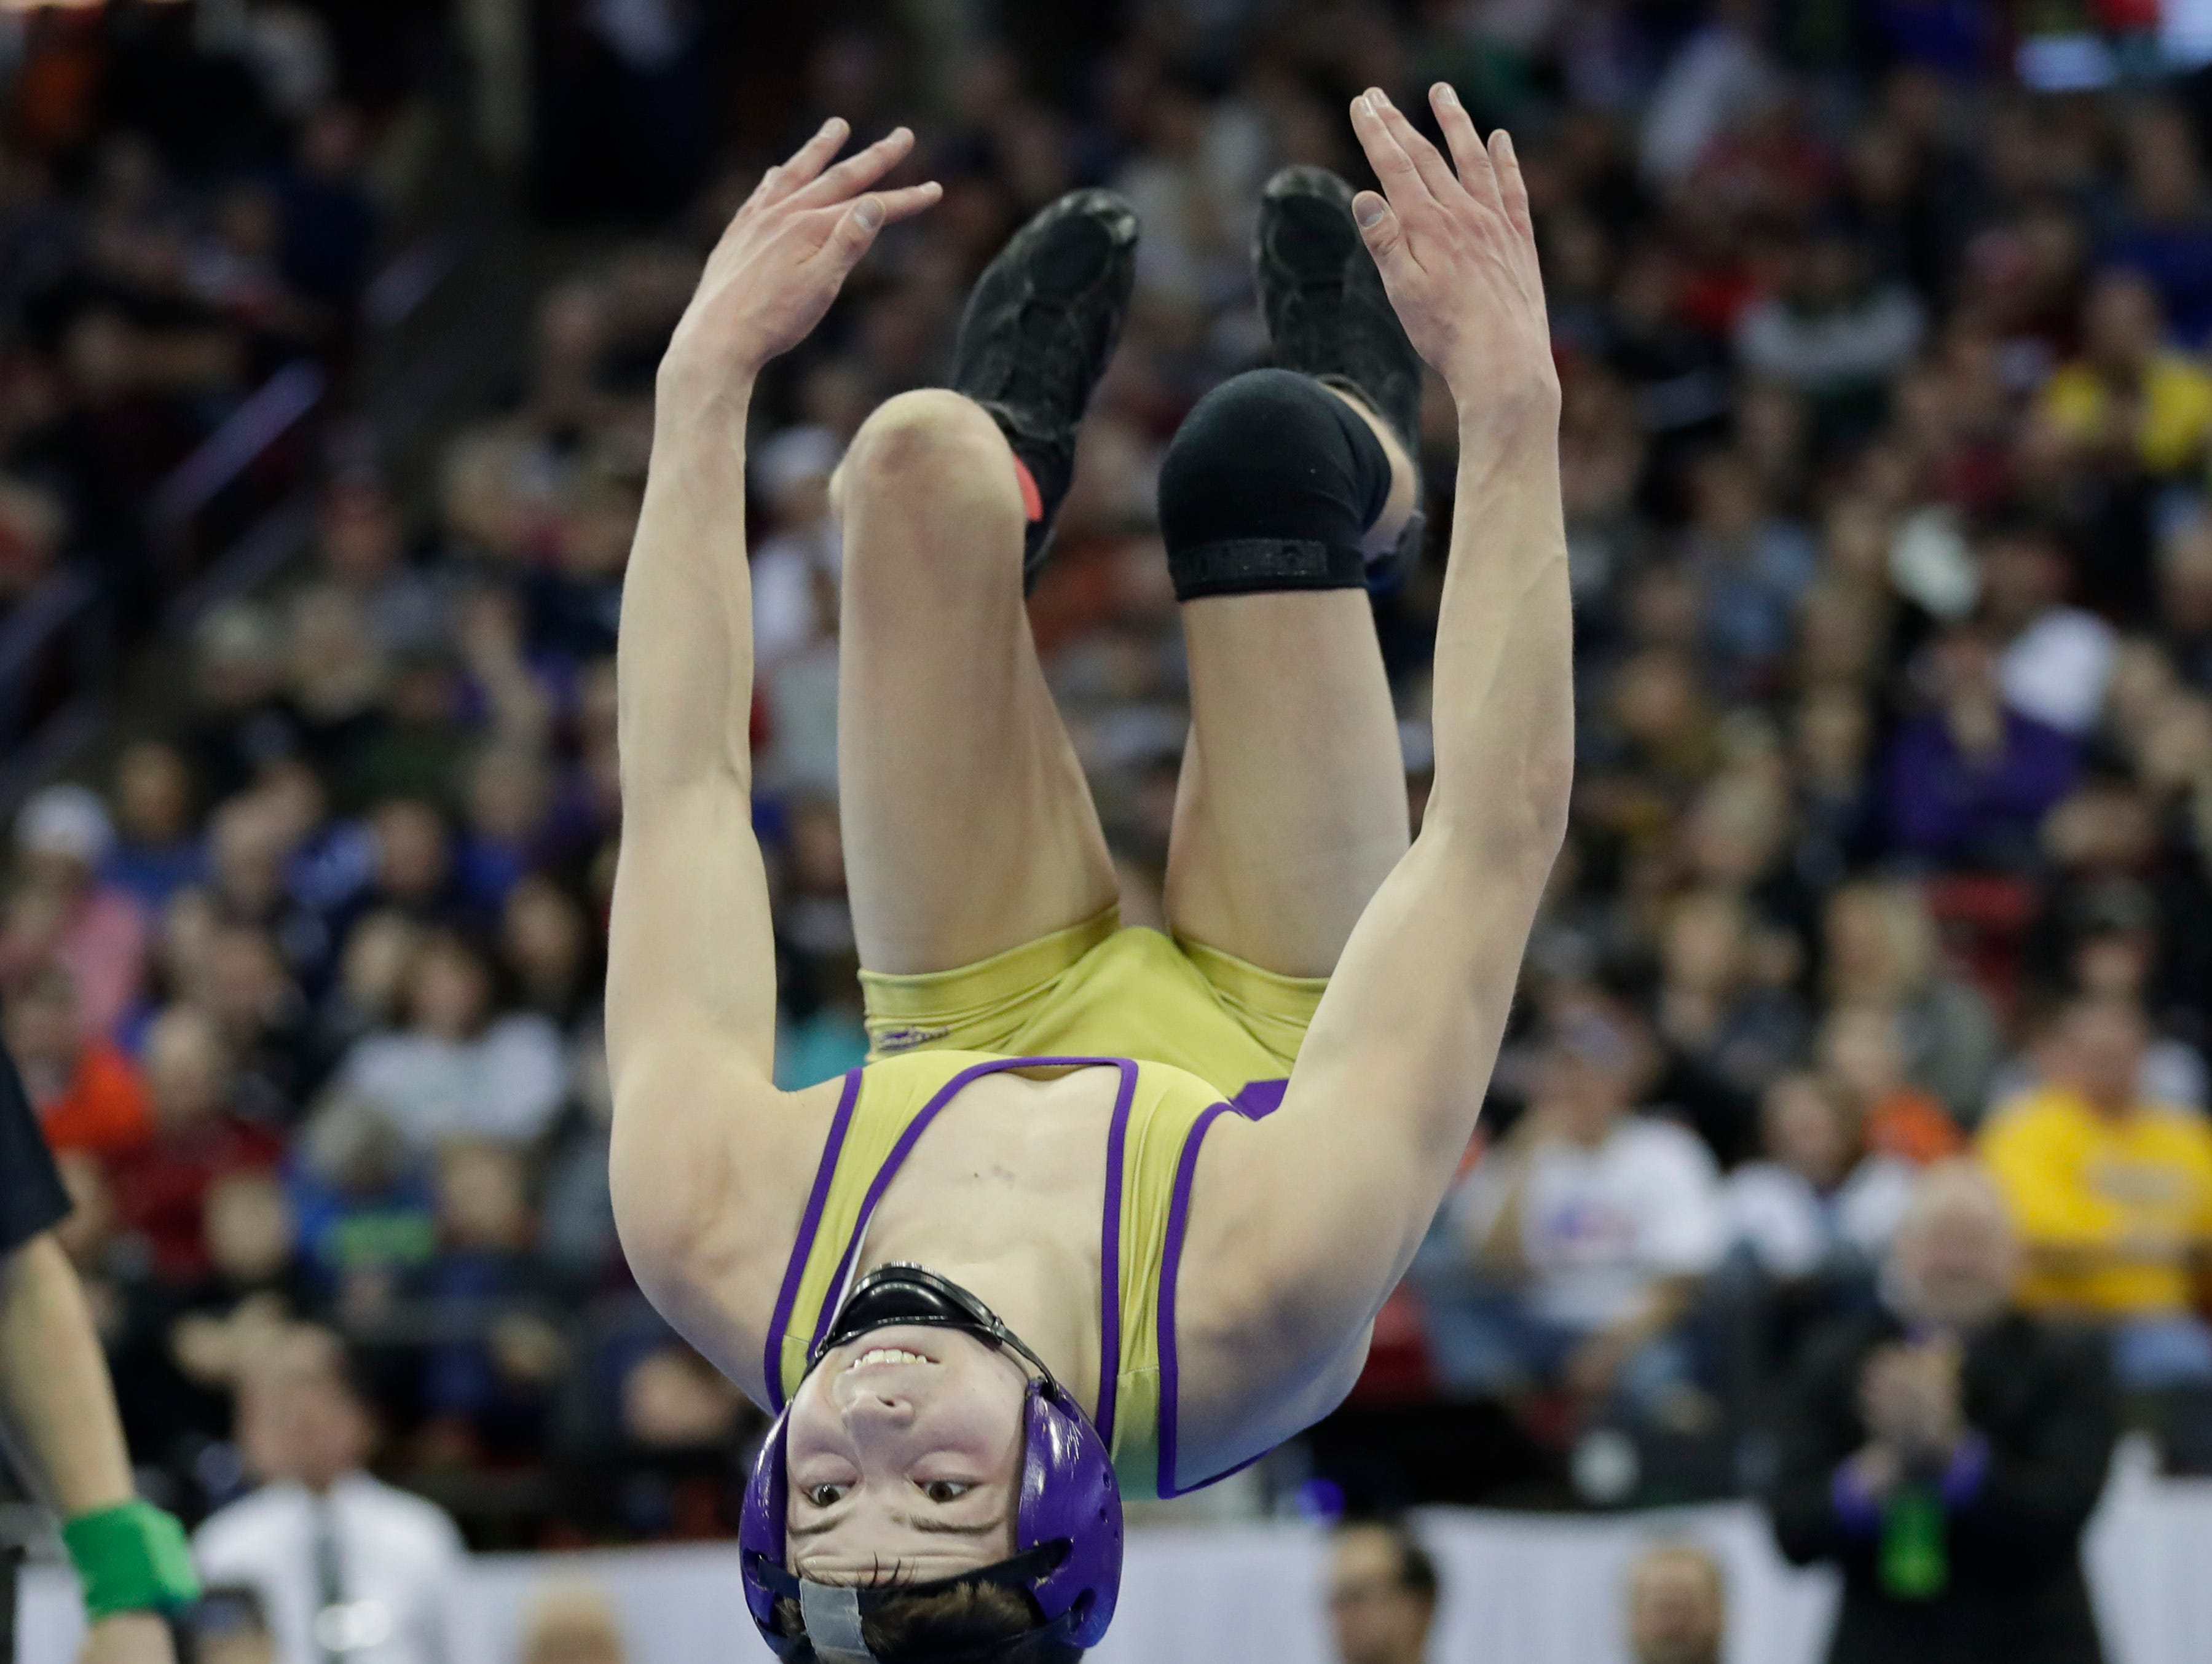 Matt Bianchi of Two Rivers backflips after beating Colby McHugh of Freedom in the 113 pound D2 finals at the 2018 State Individual Wrestling Tournament Finals Saturday, February 24, 2018 at the Kohl Center in Madison, Wis.